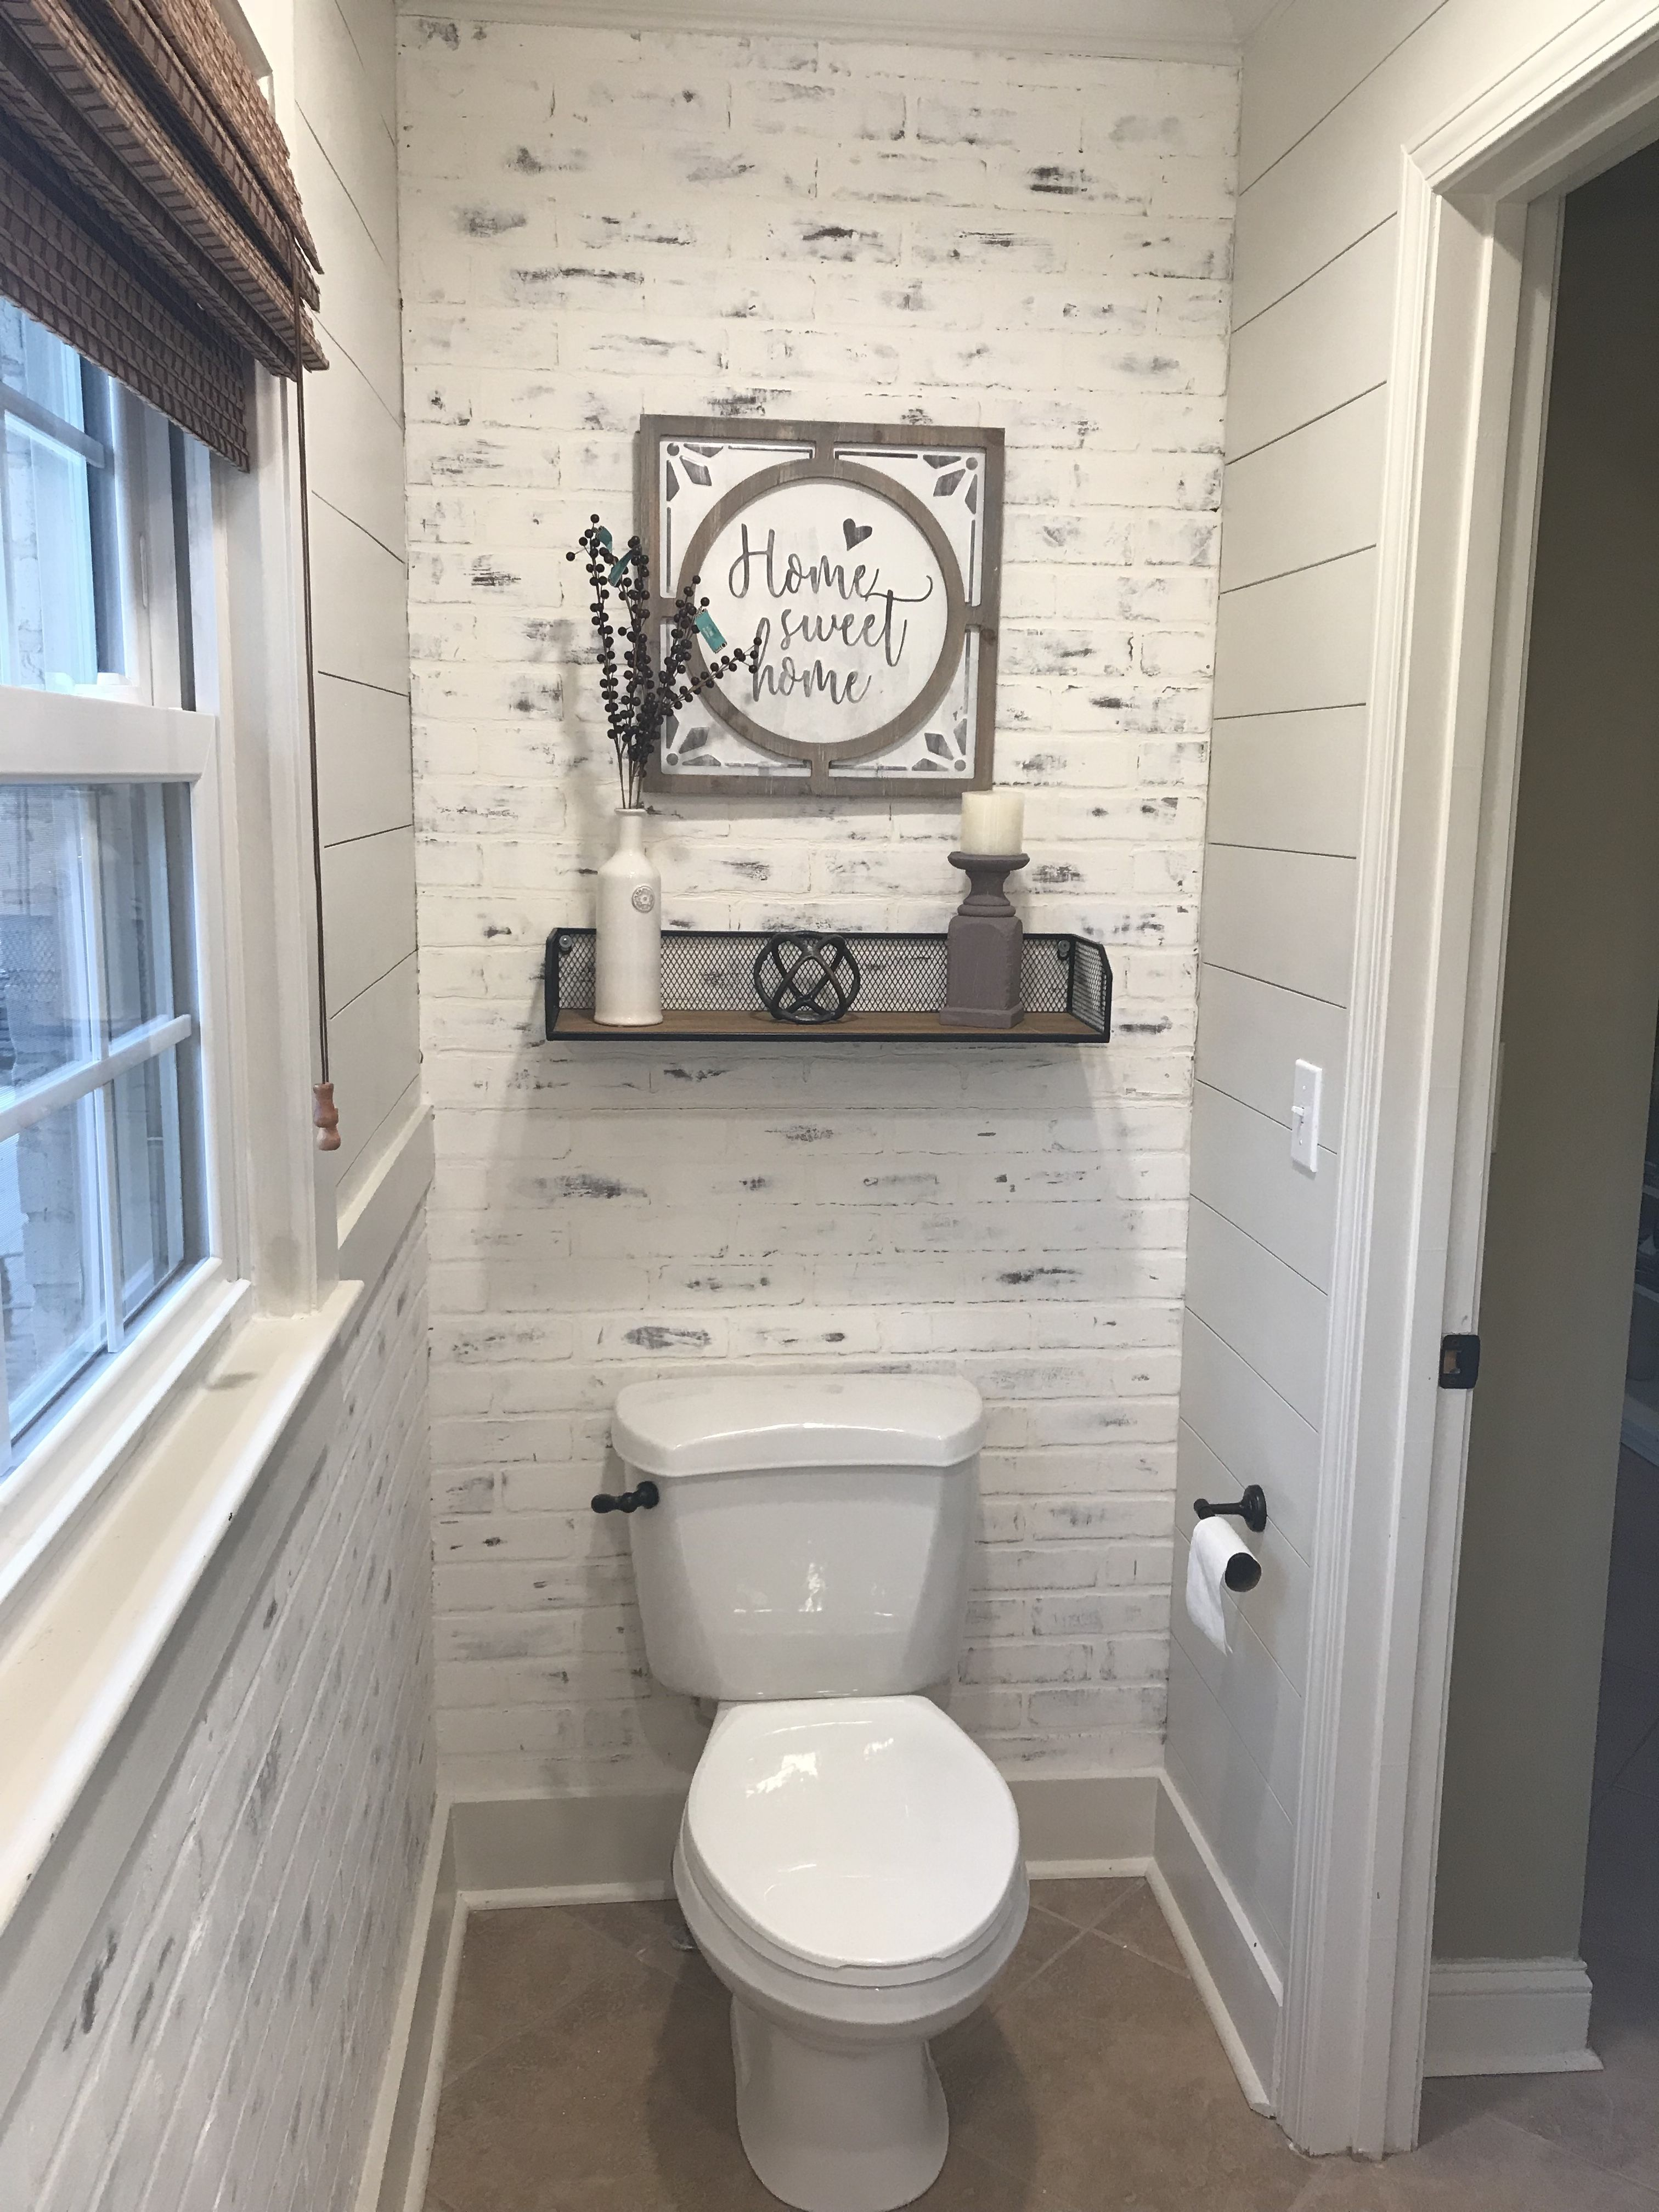 I Have Had A Lot Of Interest In My Faux Brick Accent Wall So I Thought I Would Show You How Easy Is It To Do On Yo Toilet Room Decor